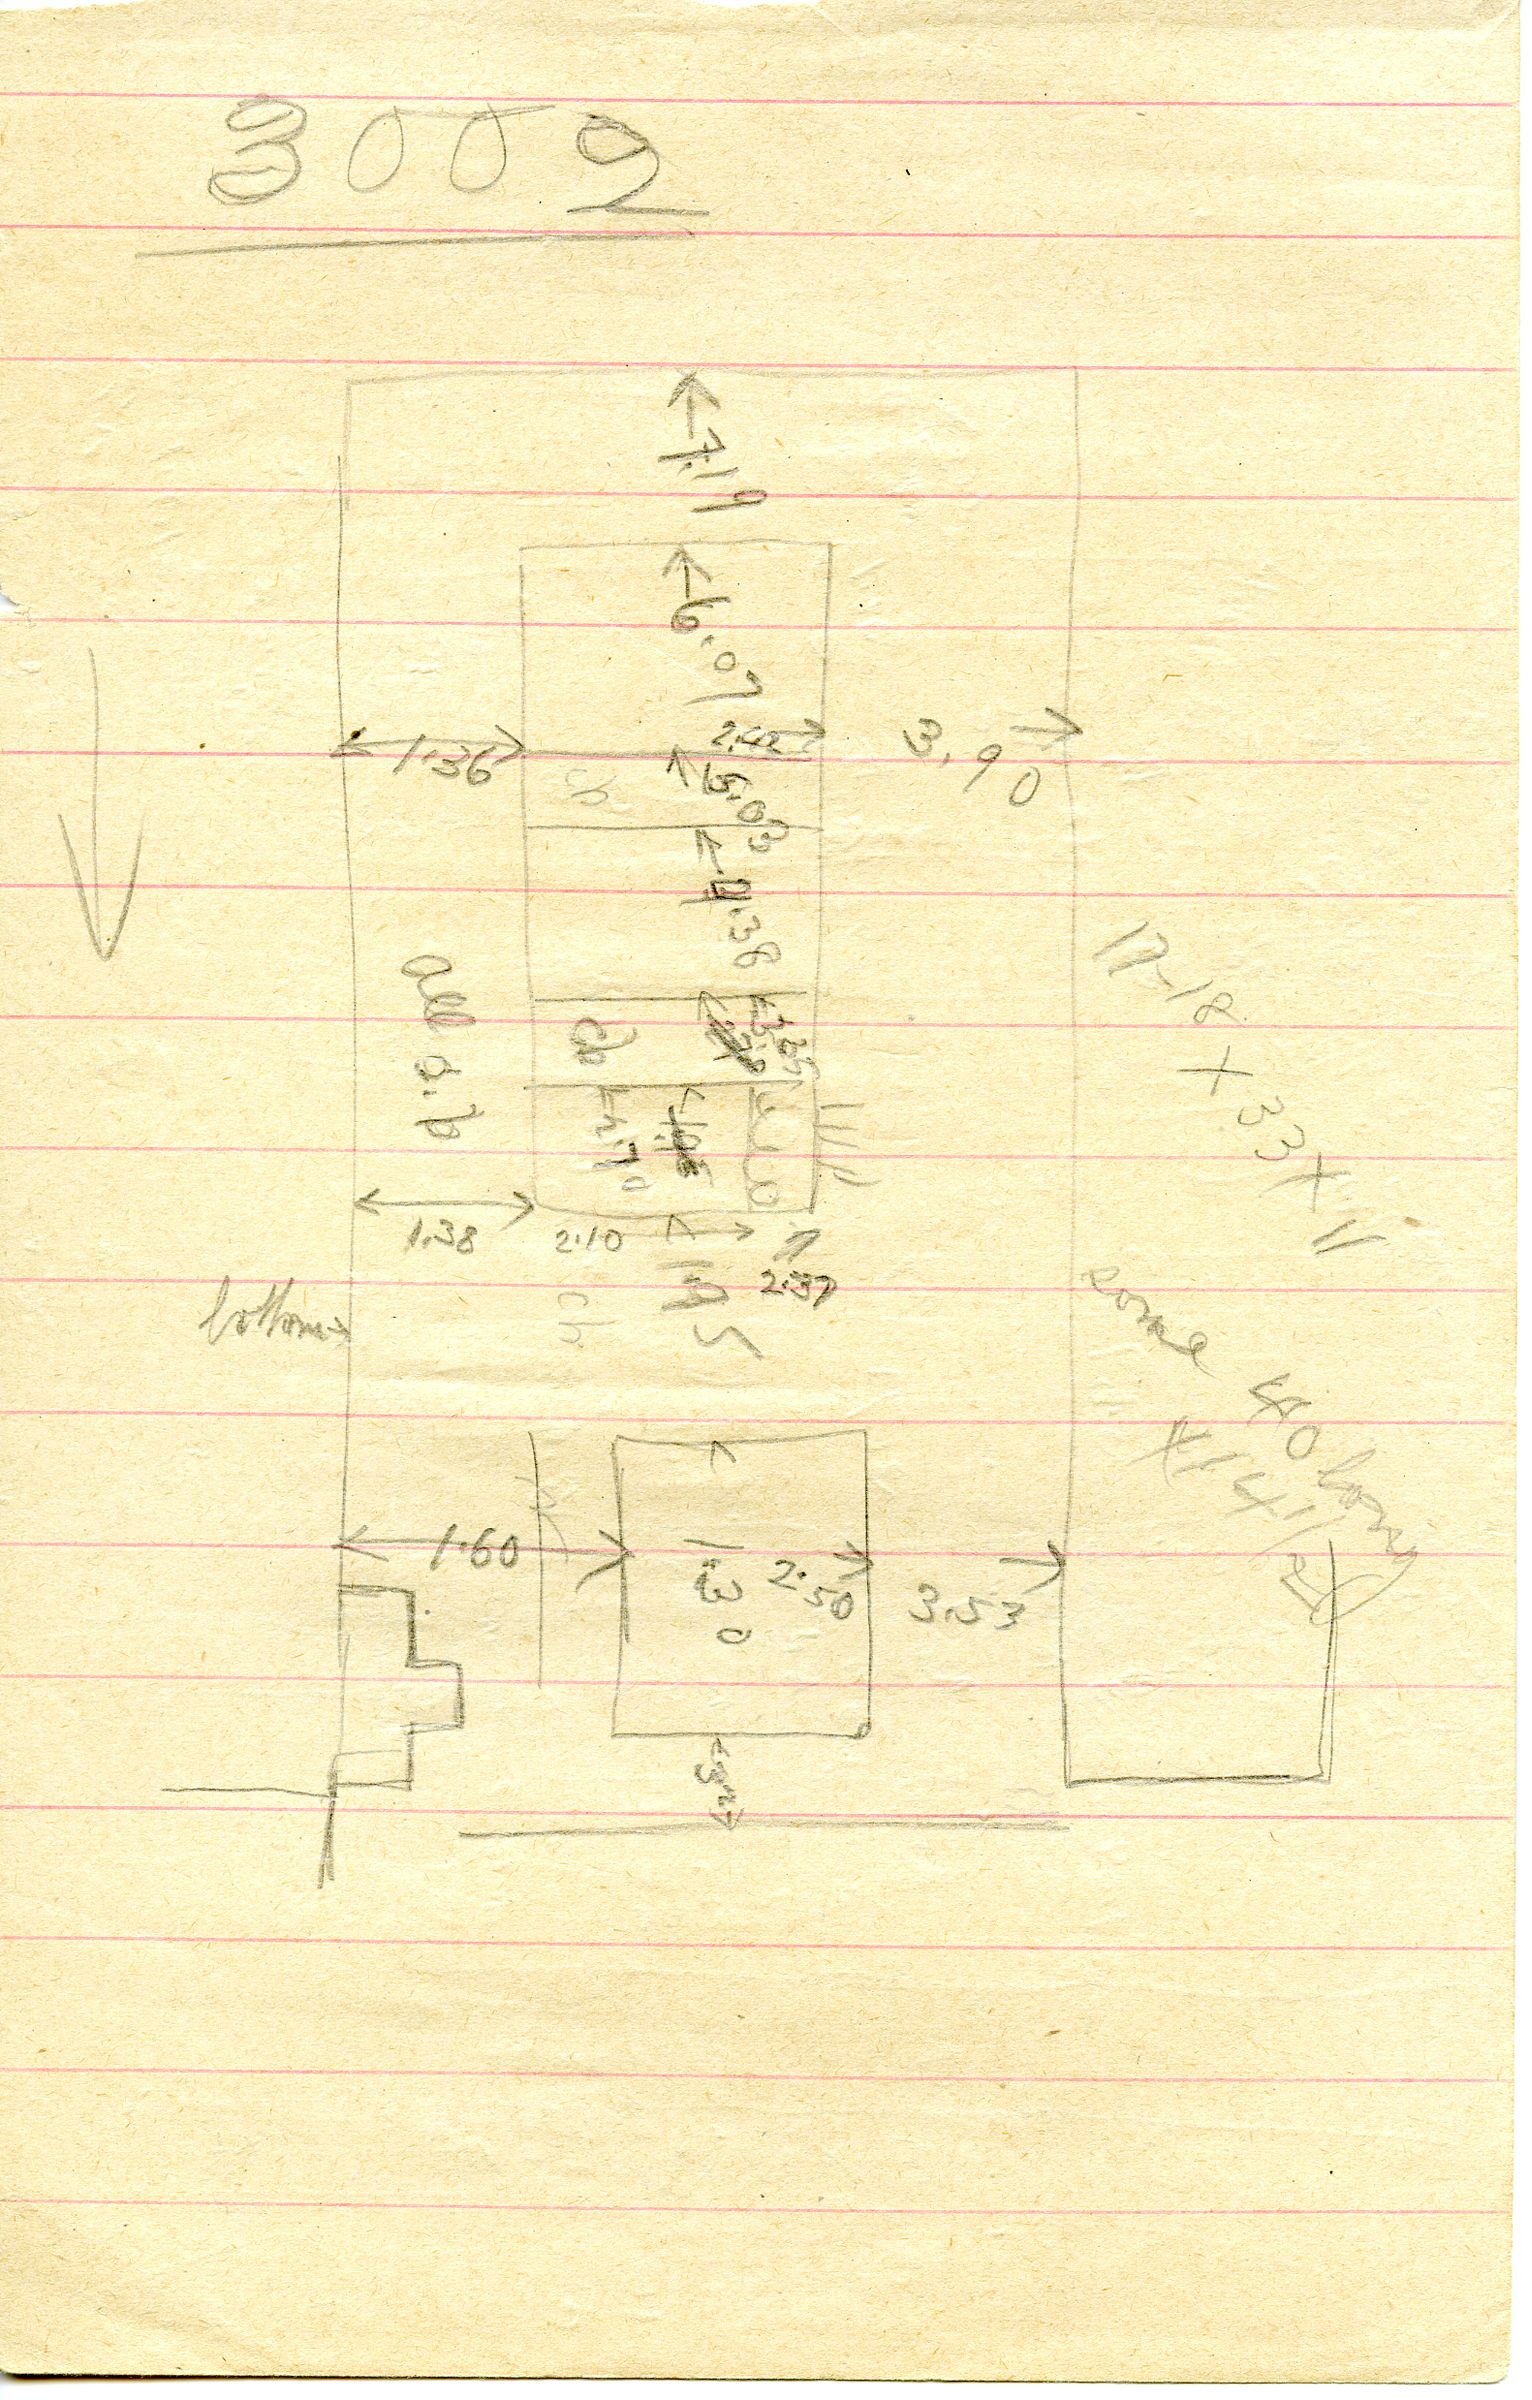 Maps and plans: G 3002, Sketch plan